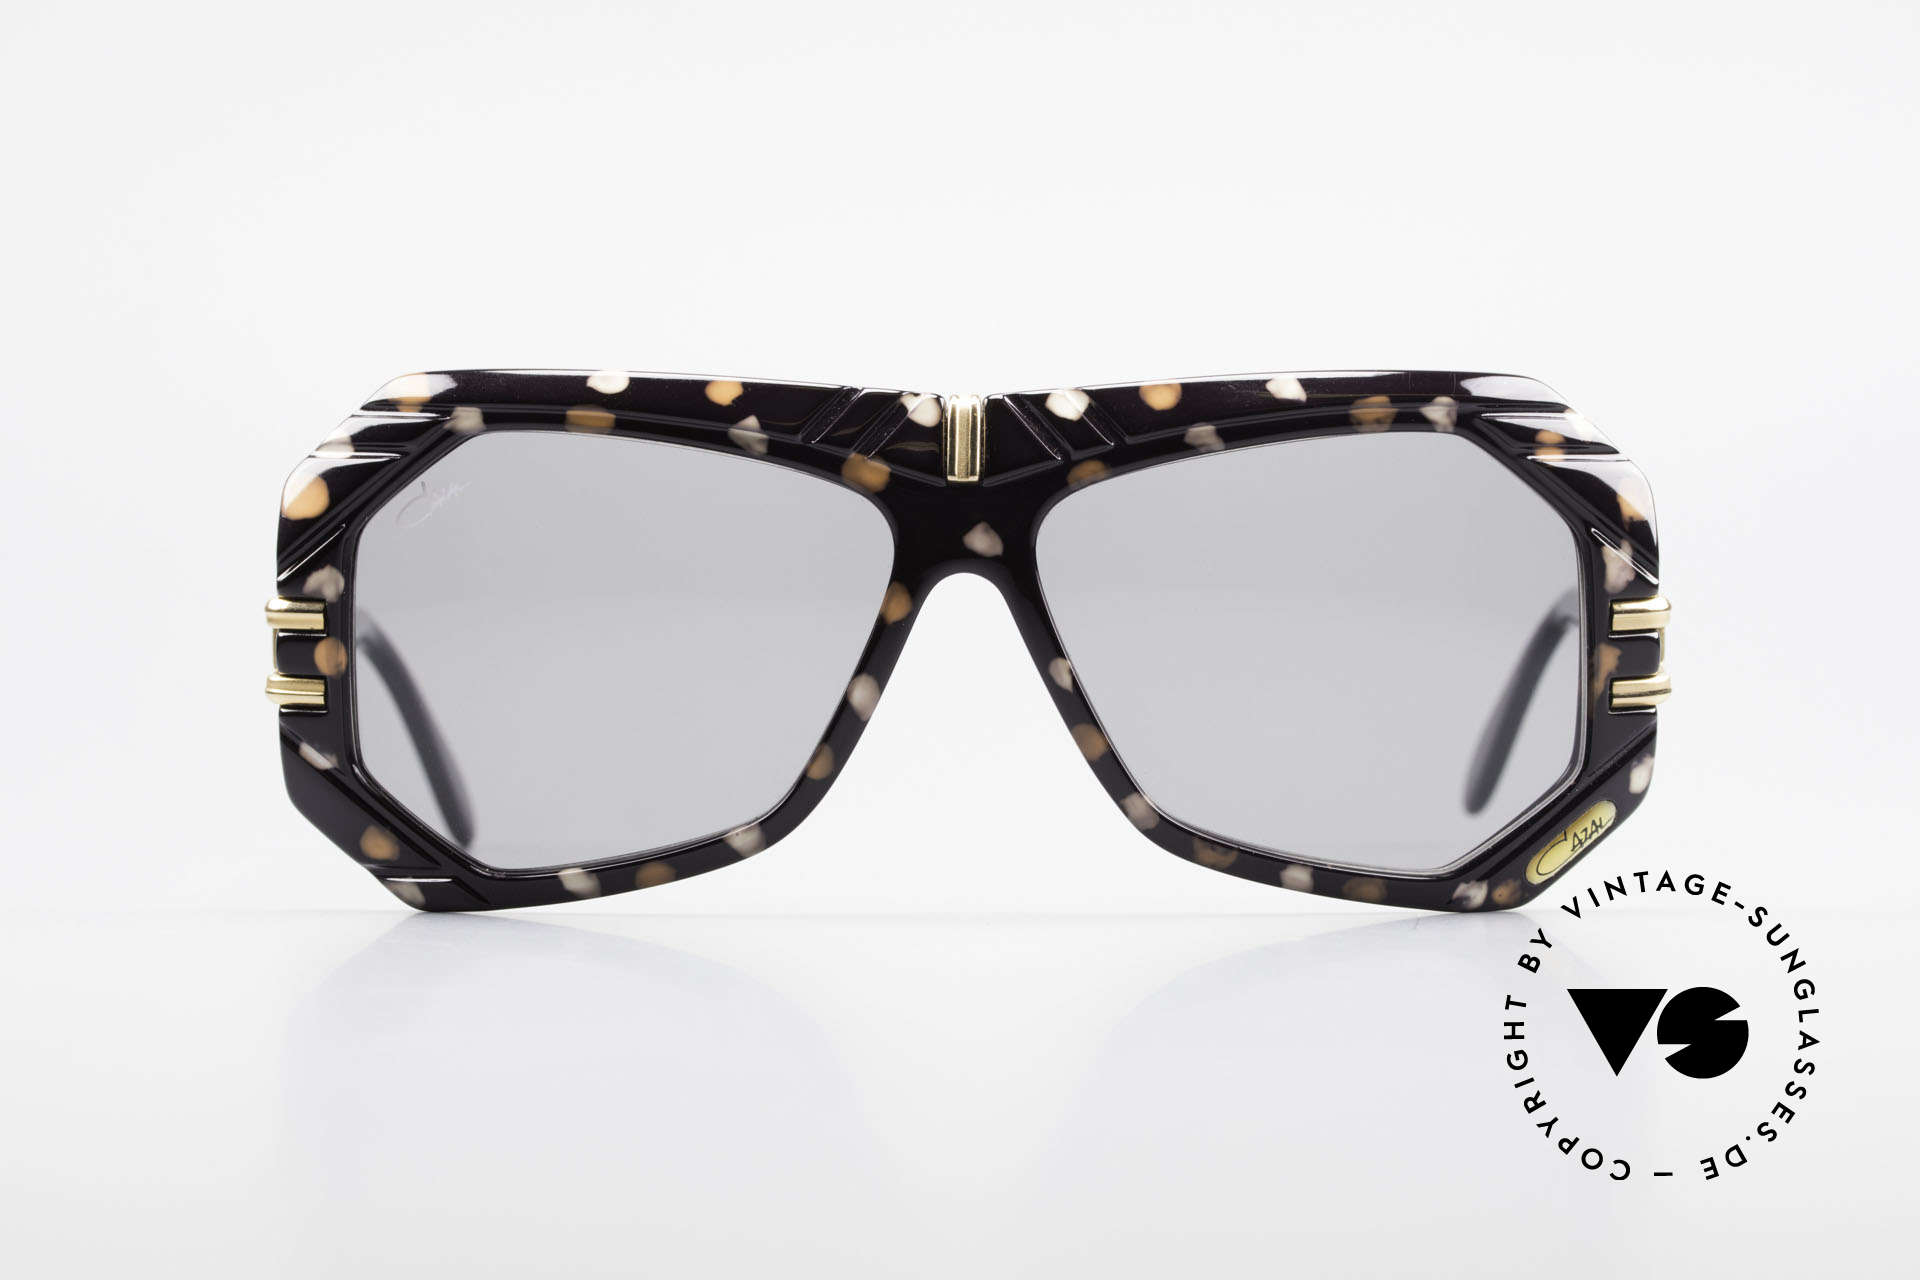 Cazal 868 West Germany Designer Shades, great combination of shapes, colors and materials, Made for Men and Women